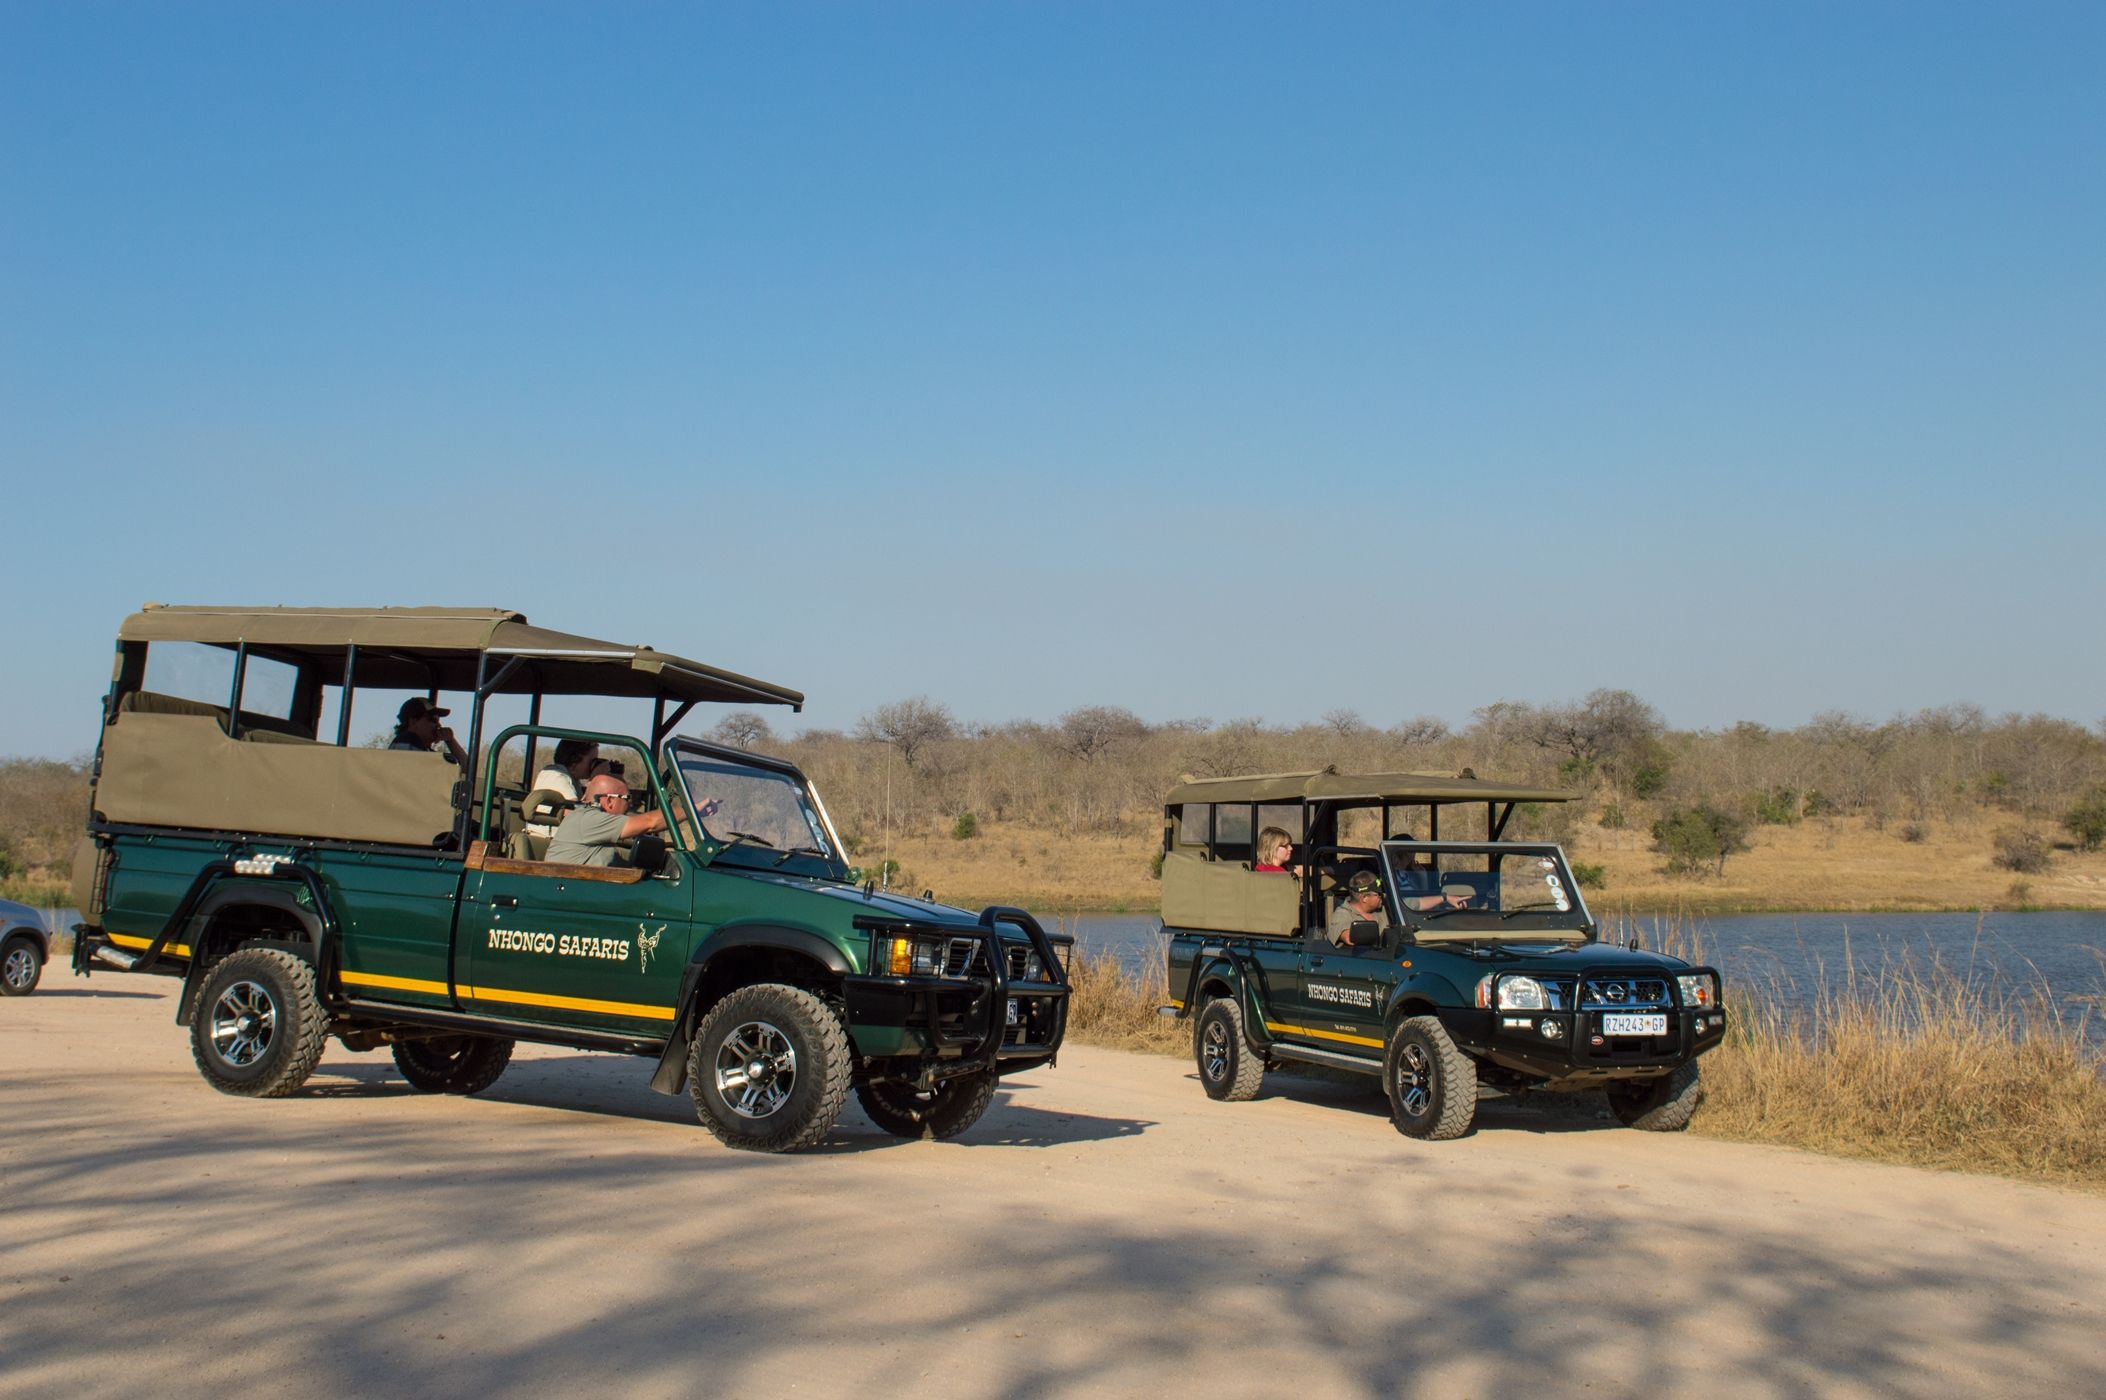 Open Safari Vehicles | Nhongo safaris Photoshoot Done By ARL